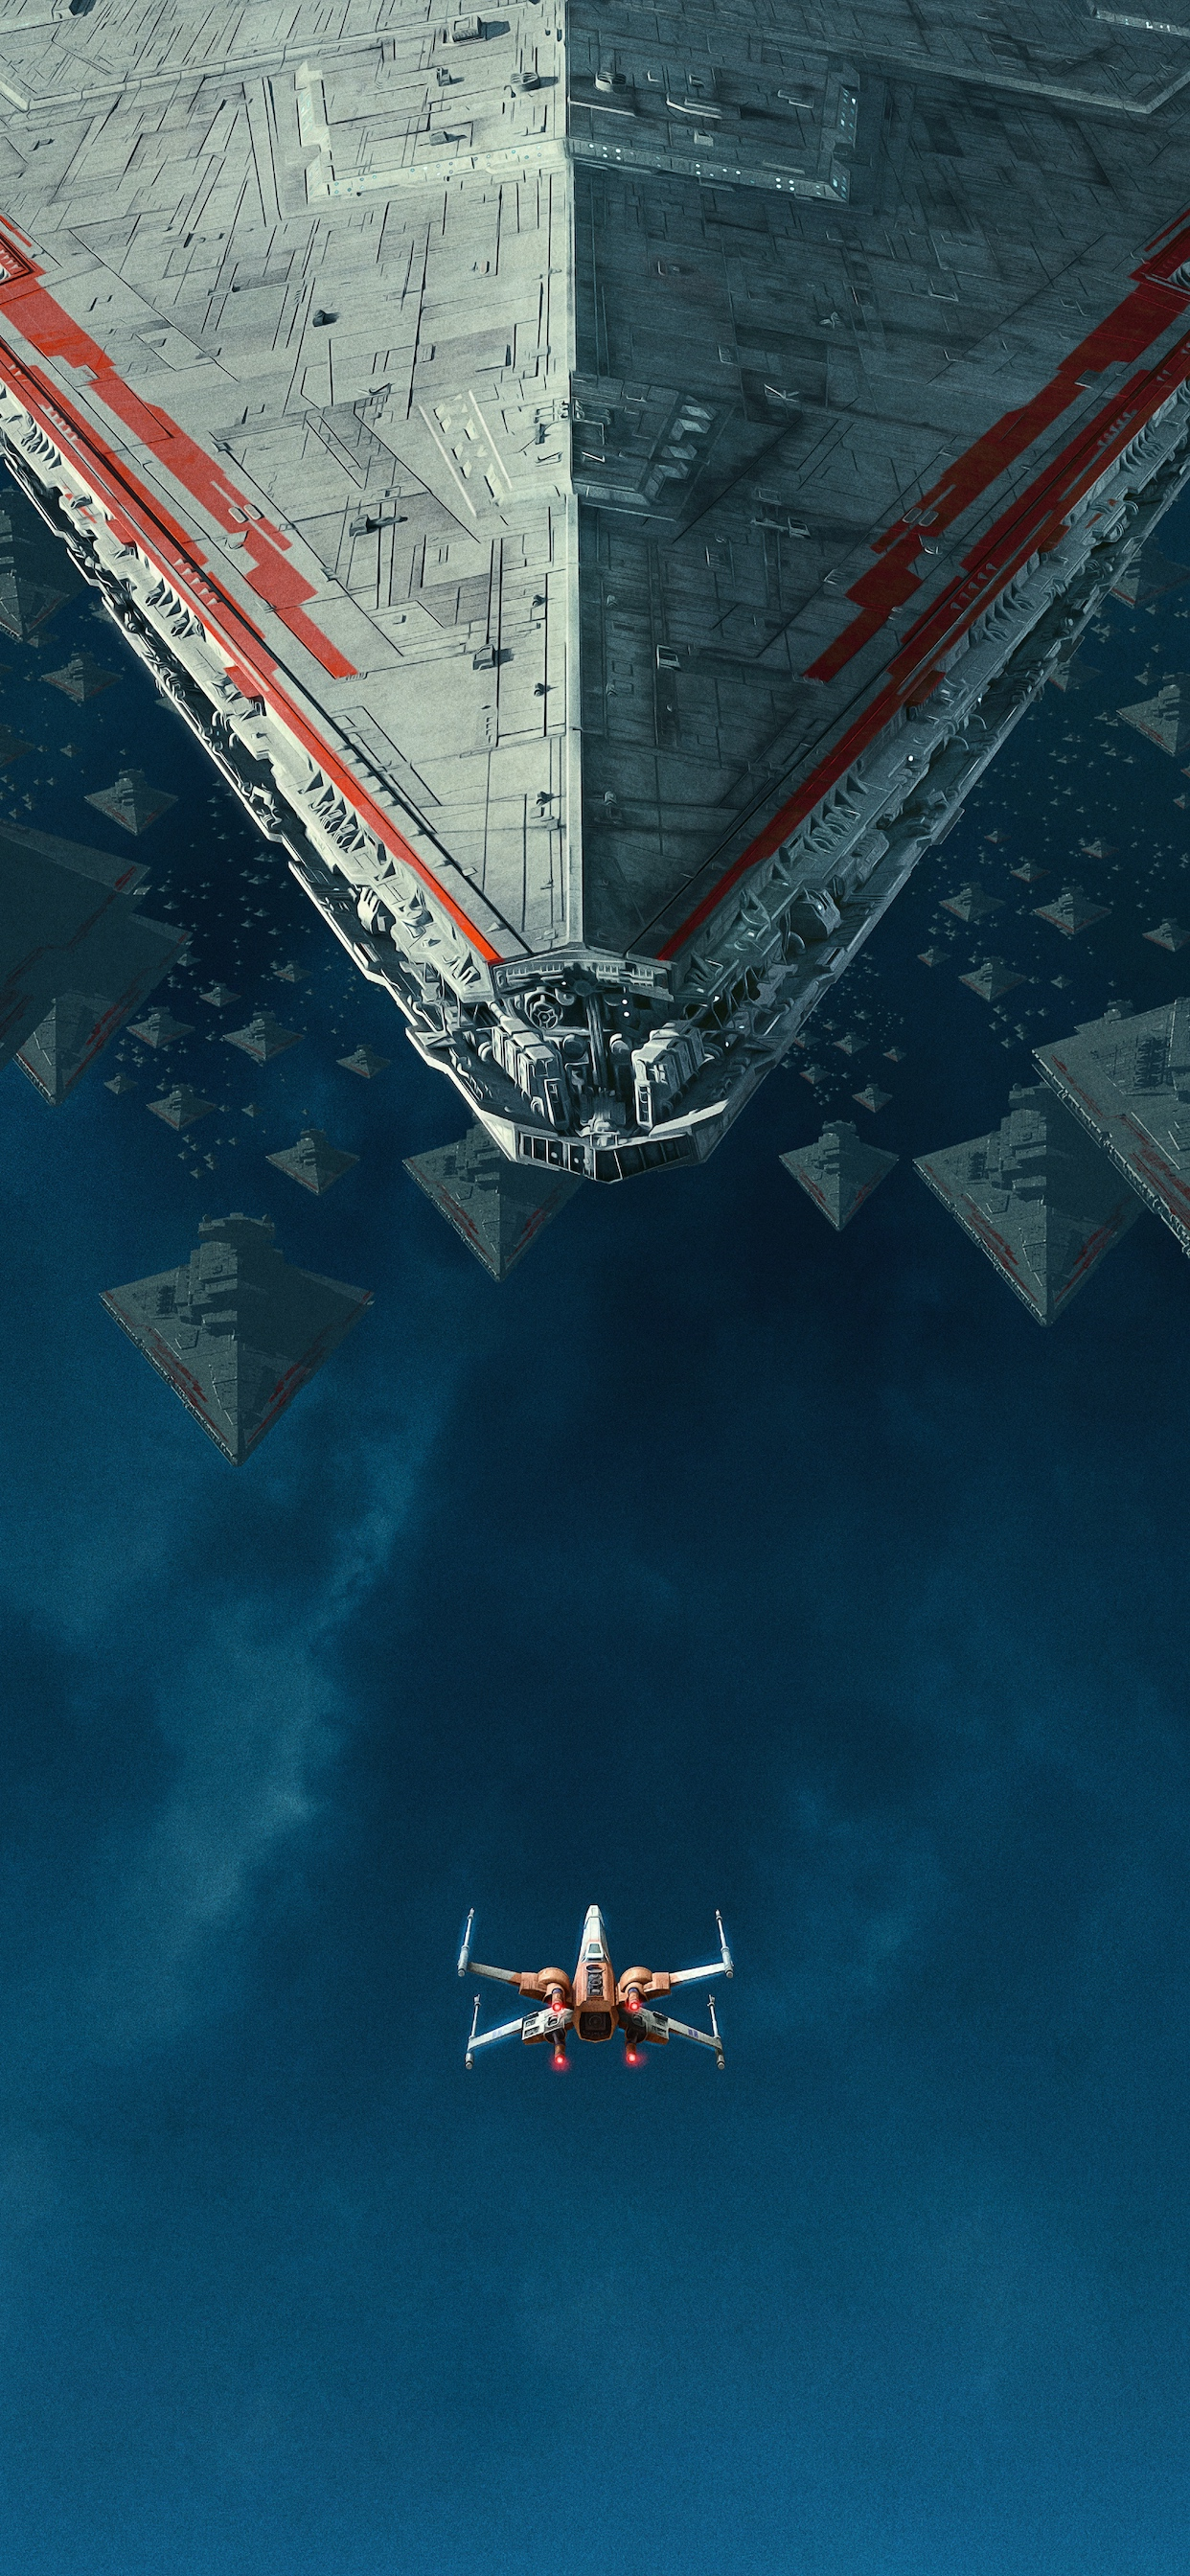 Star Wars Rise of Skywalker Dolby Poster iPhone wallpaper no logo